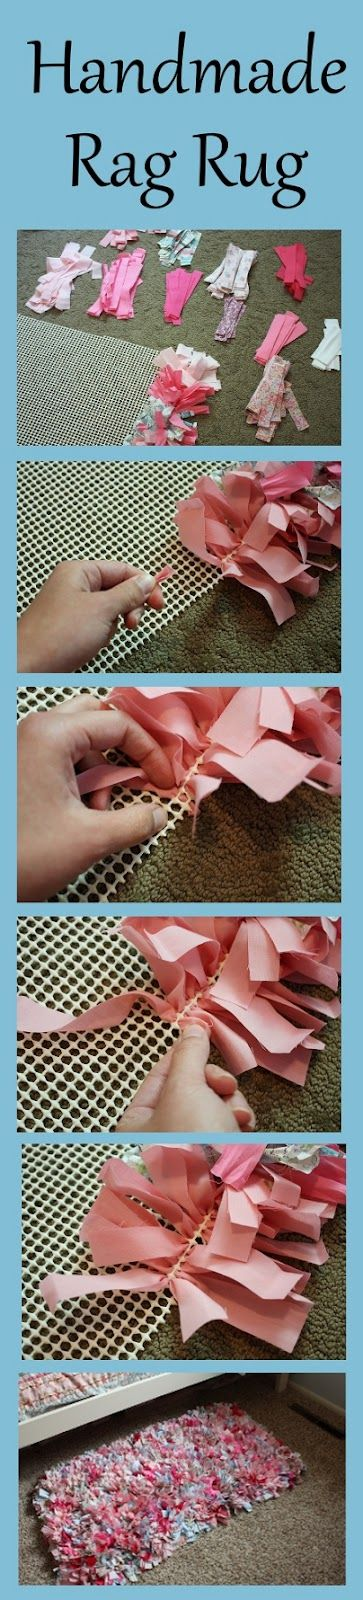 LOVE this! So simple to make.: Fabrics Scrap, Scrap Rugs, Rag Rugs Tutorials, Fabrics Strips, Scrap Fabrics, Ragrug, Diy Rugs, Girls Rooms, Kids Rooms